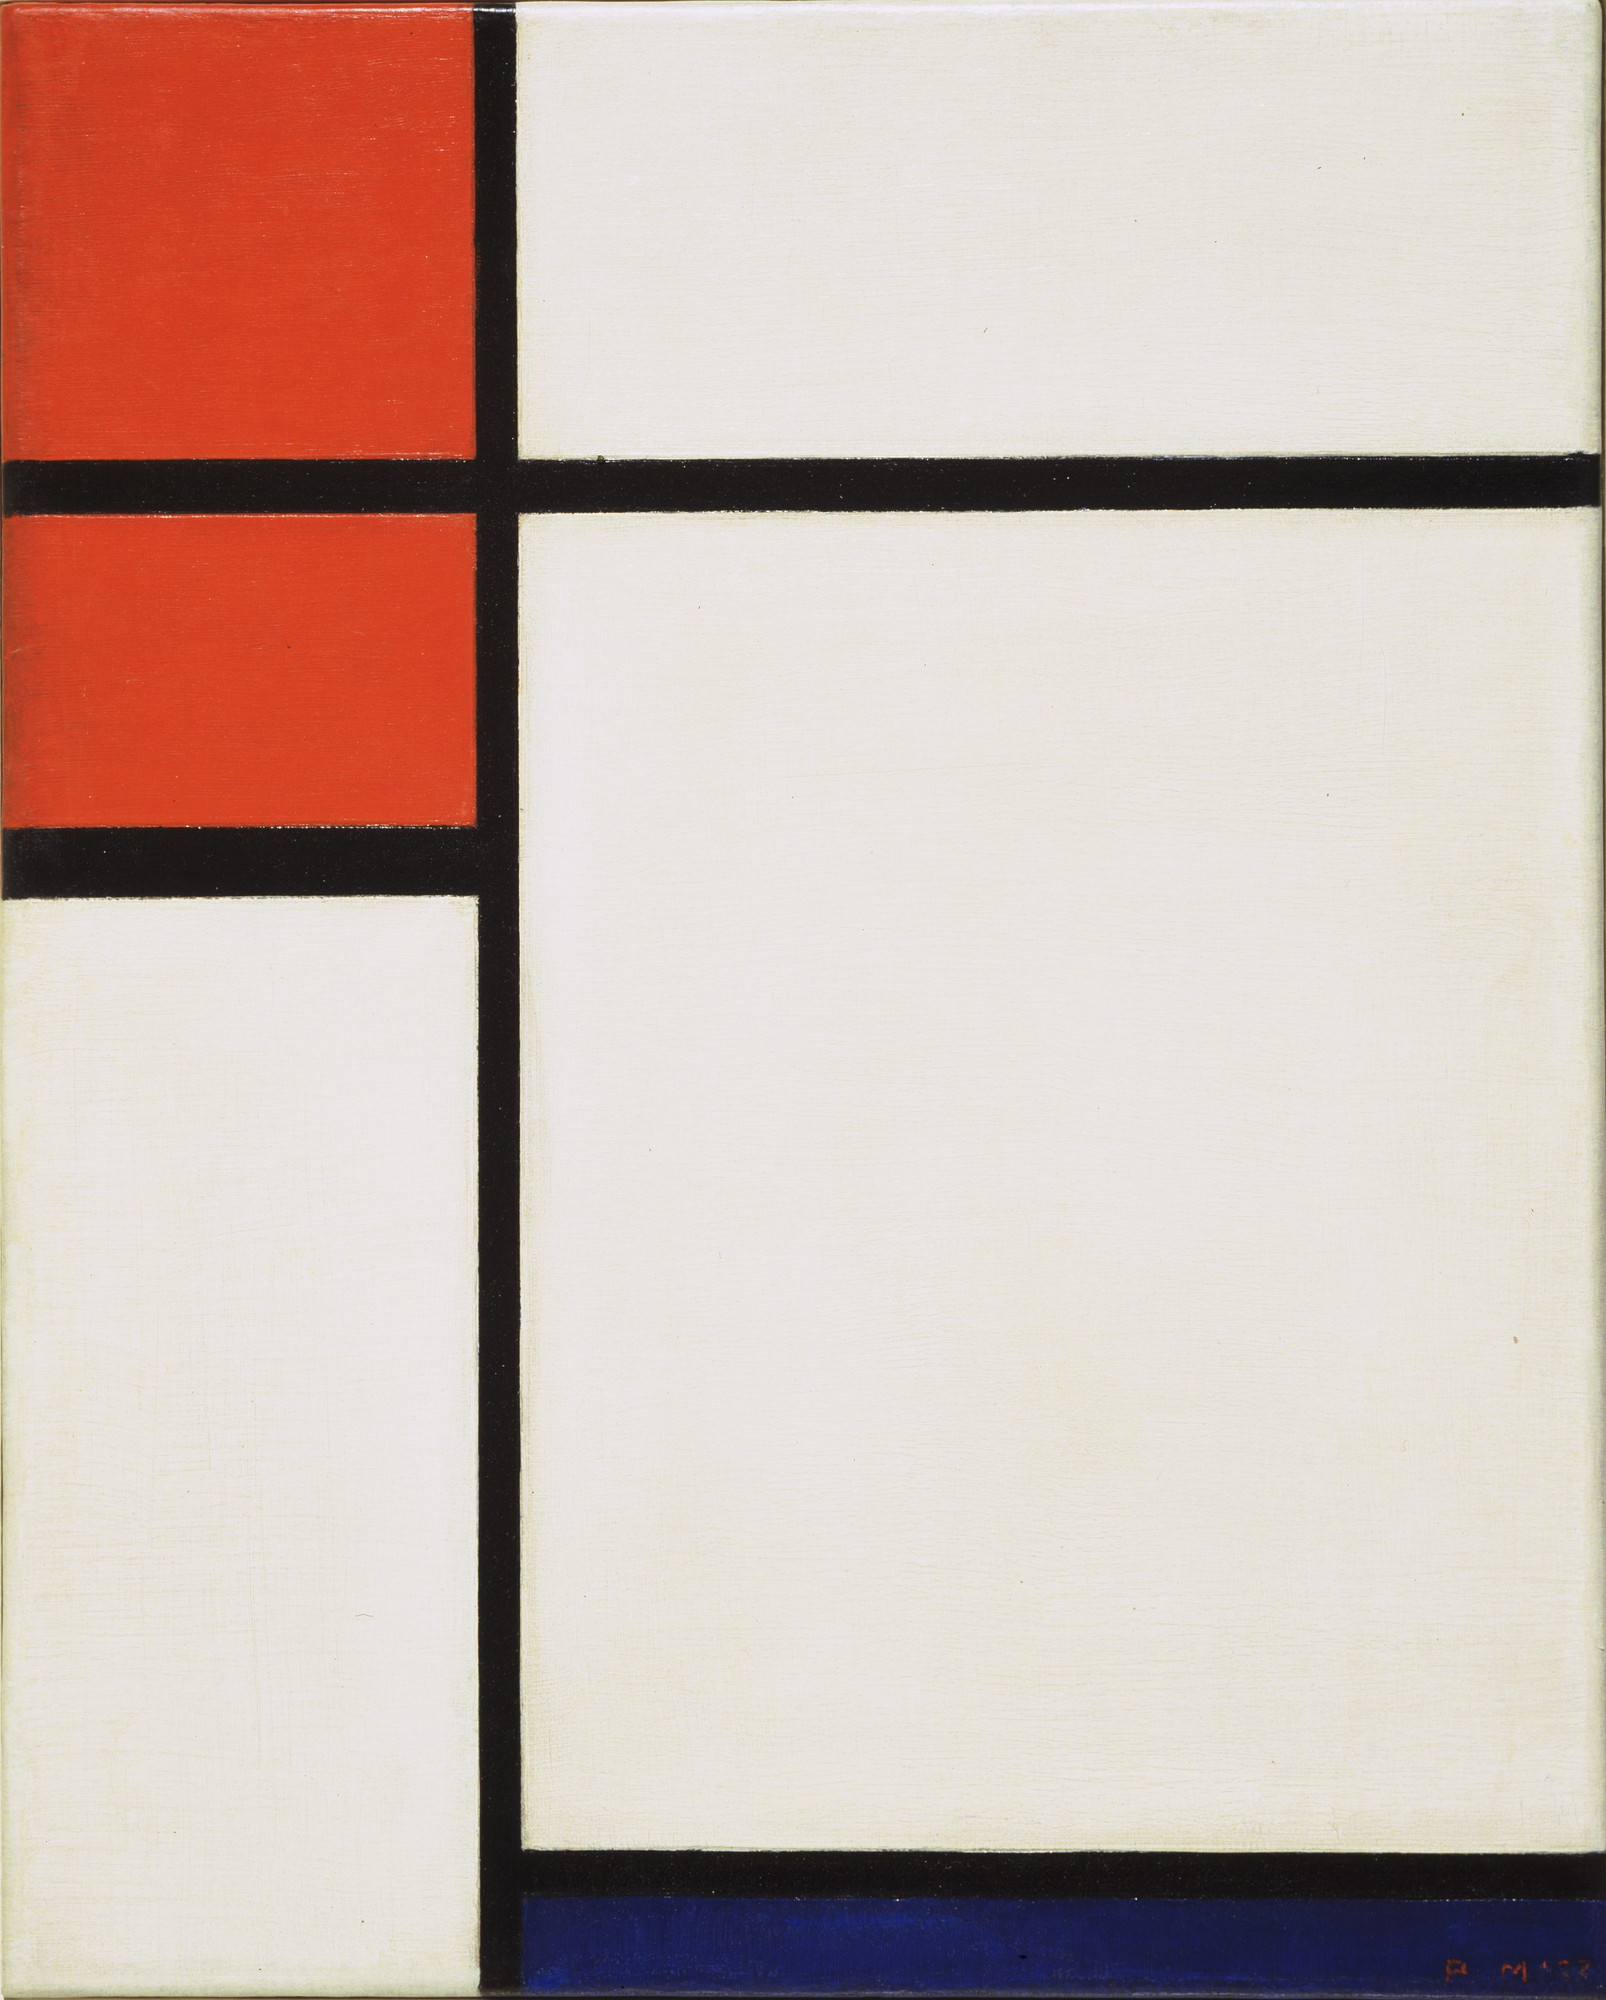 Piet Mondrian. Composition with Red and Blue. 1933